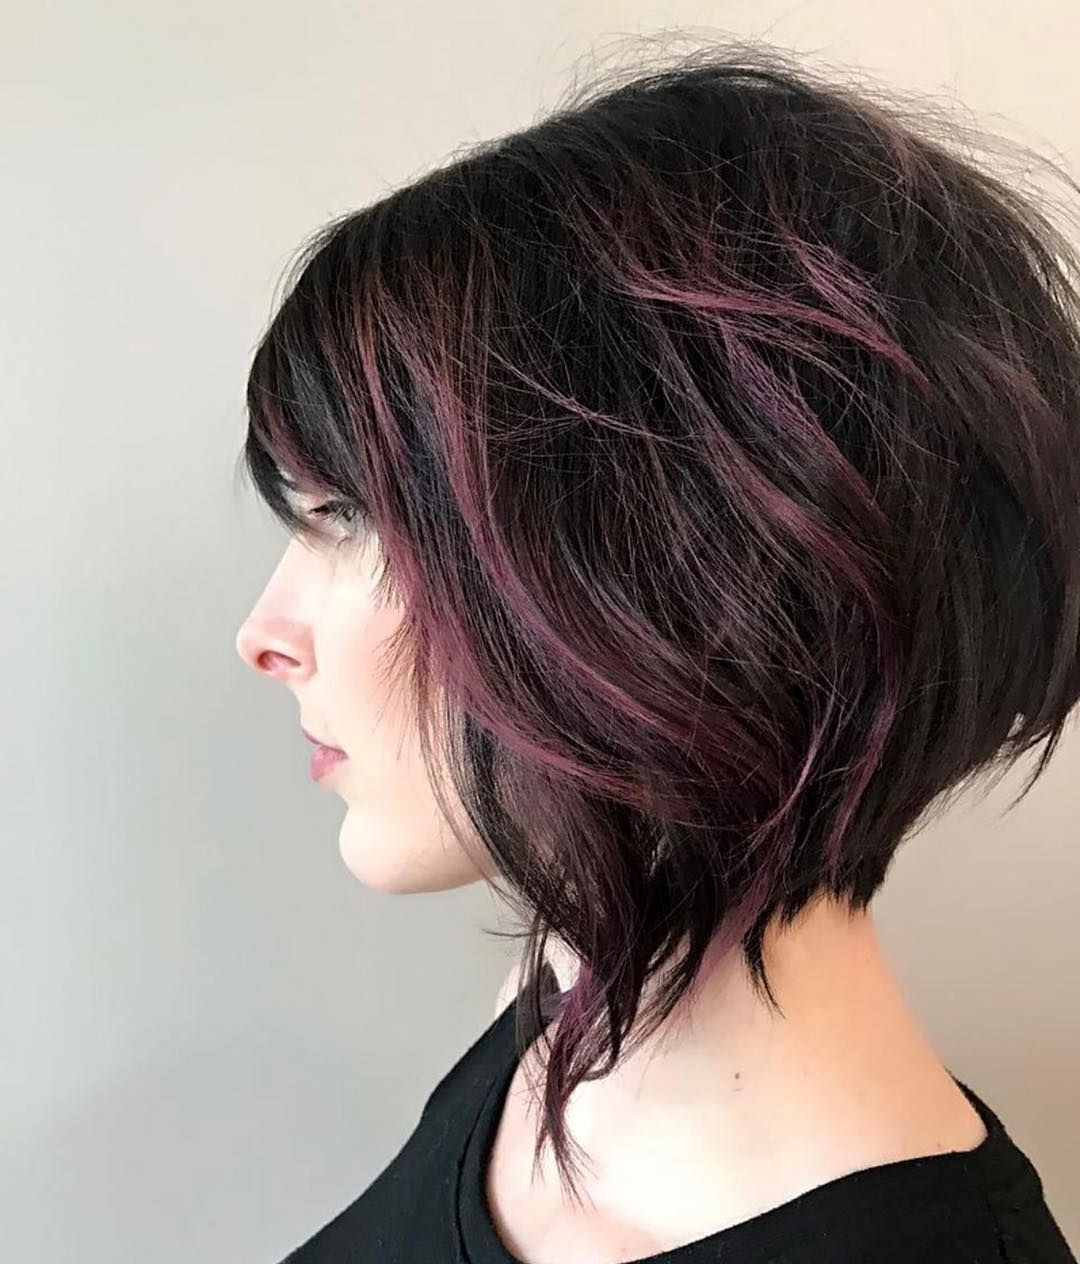 Favorite Marvelous Mauve Shaggy Bob Hairstyles With We Love This Short Angled Bob And Dark Purple Balayage (View 2 of 20)